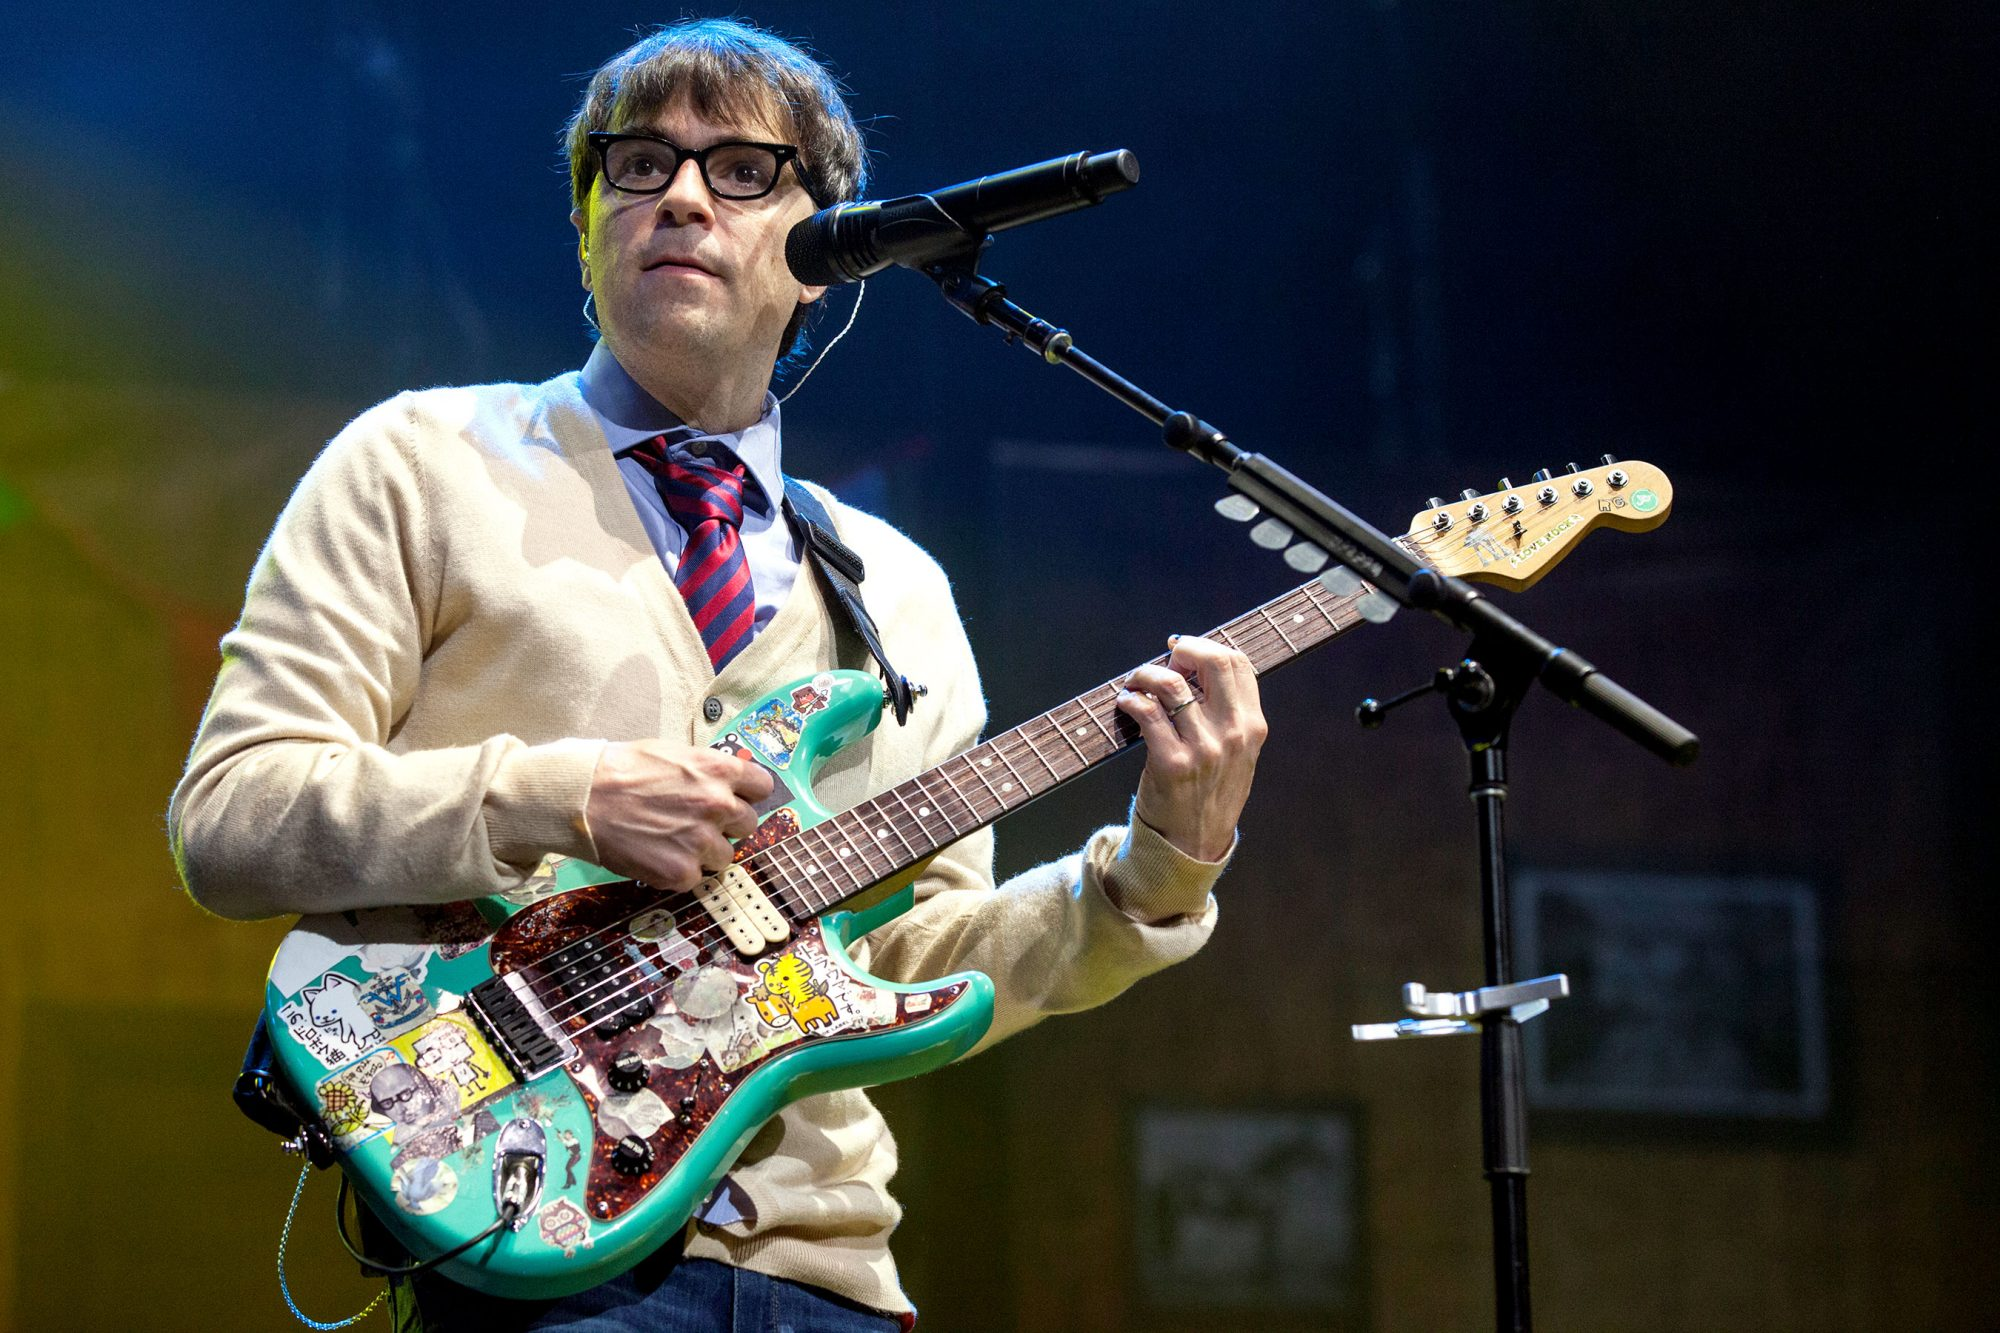 Rivers Cuomo on Weezer, 'The Black Album,' Toto's 'Africa' | EW.com